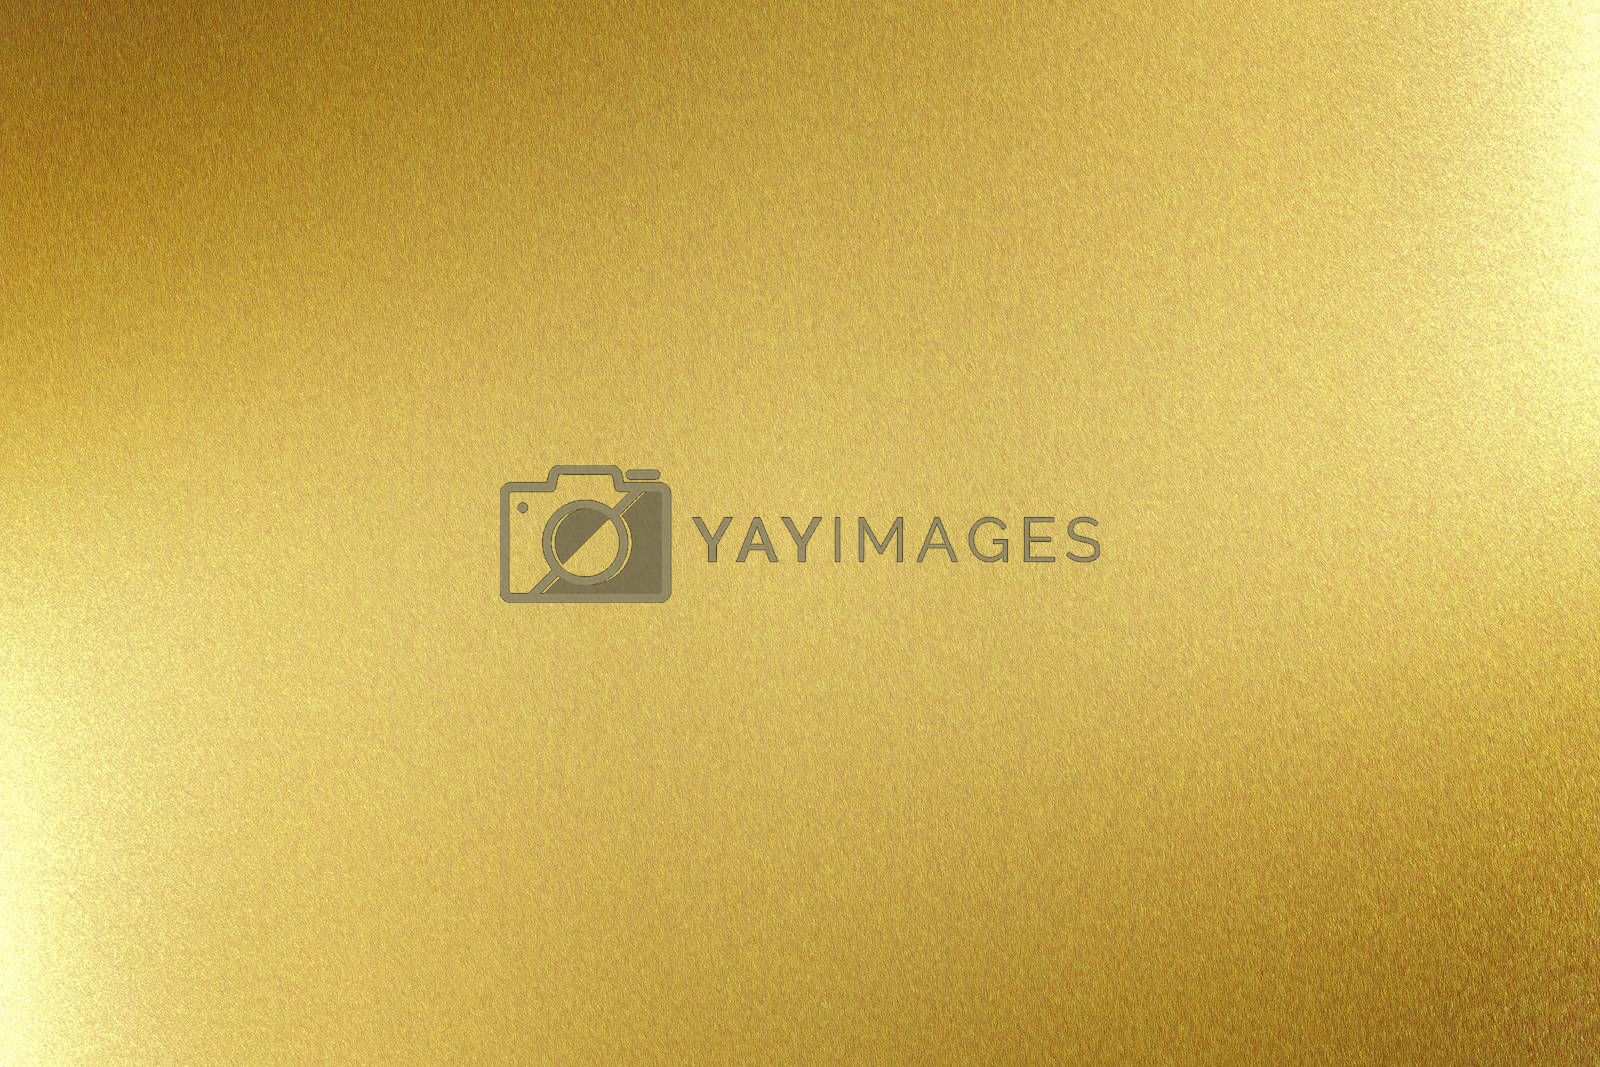 Royalty free image of Light shining on gold metal board, abstract texture background by mouu007